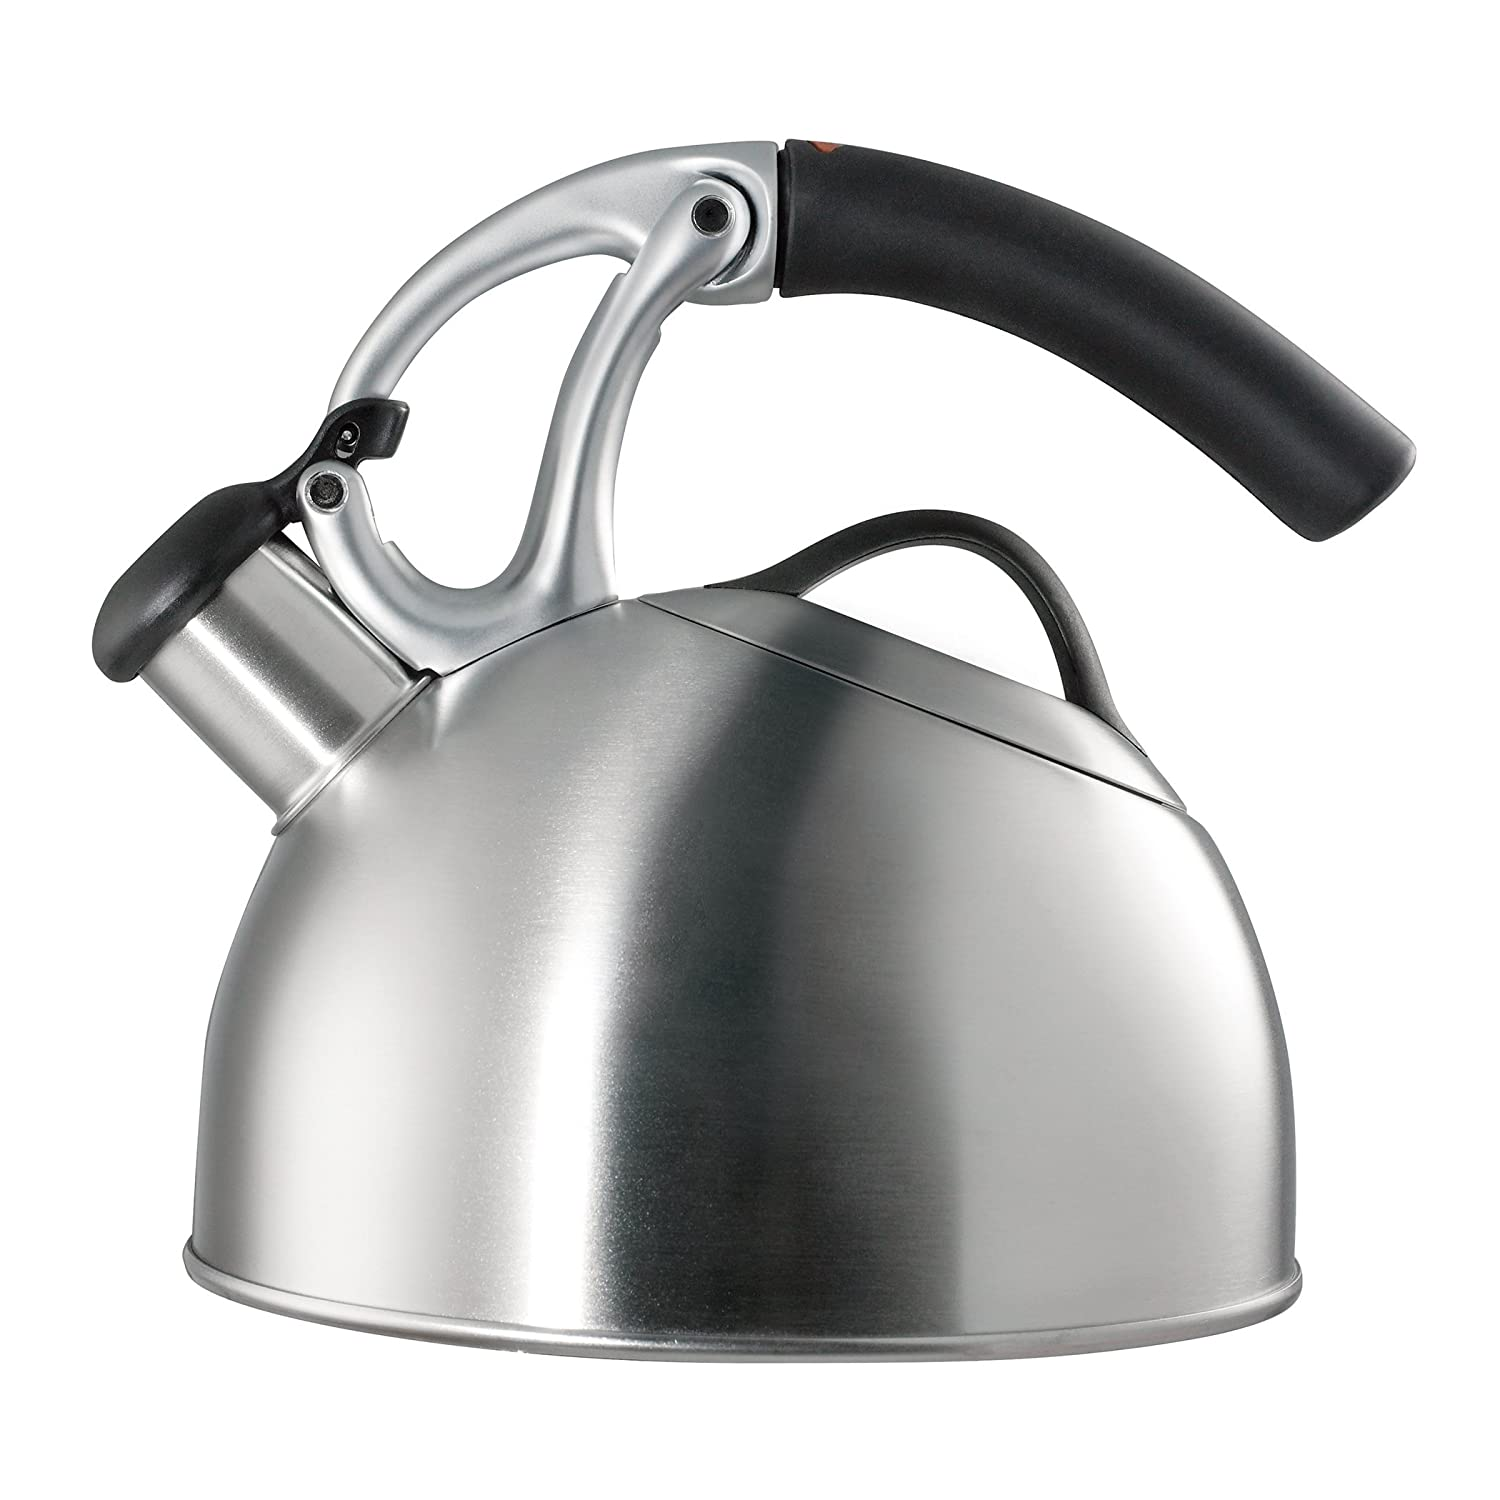 Modern stainless tea kettle. Shop my kitchen and find a helpful resource Guide For a Decidedly Simple Serene Grey Kitchen in Arizona!